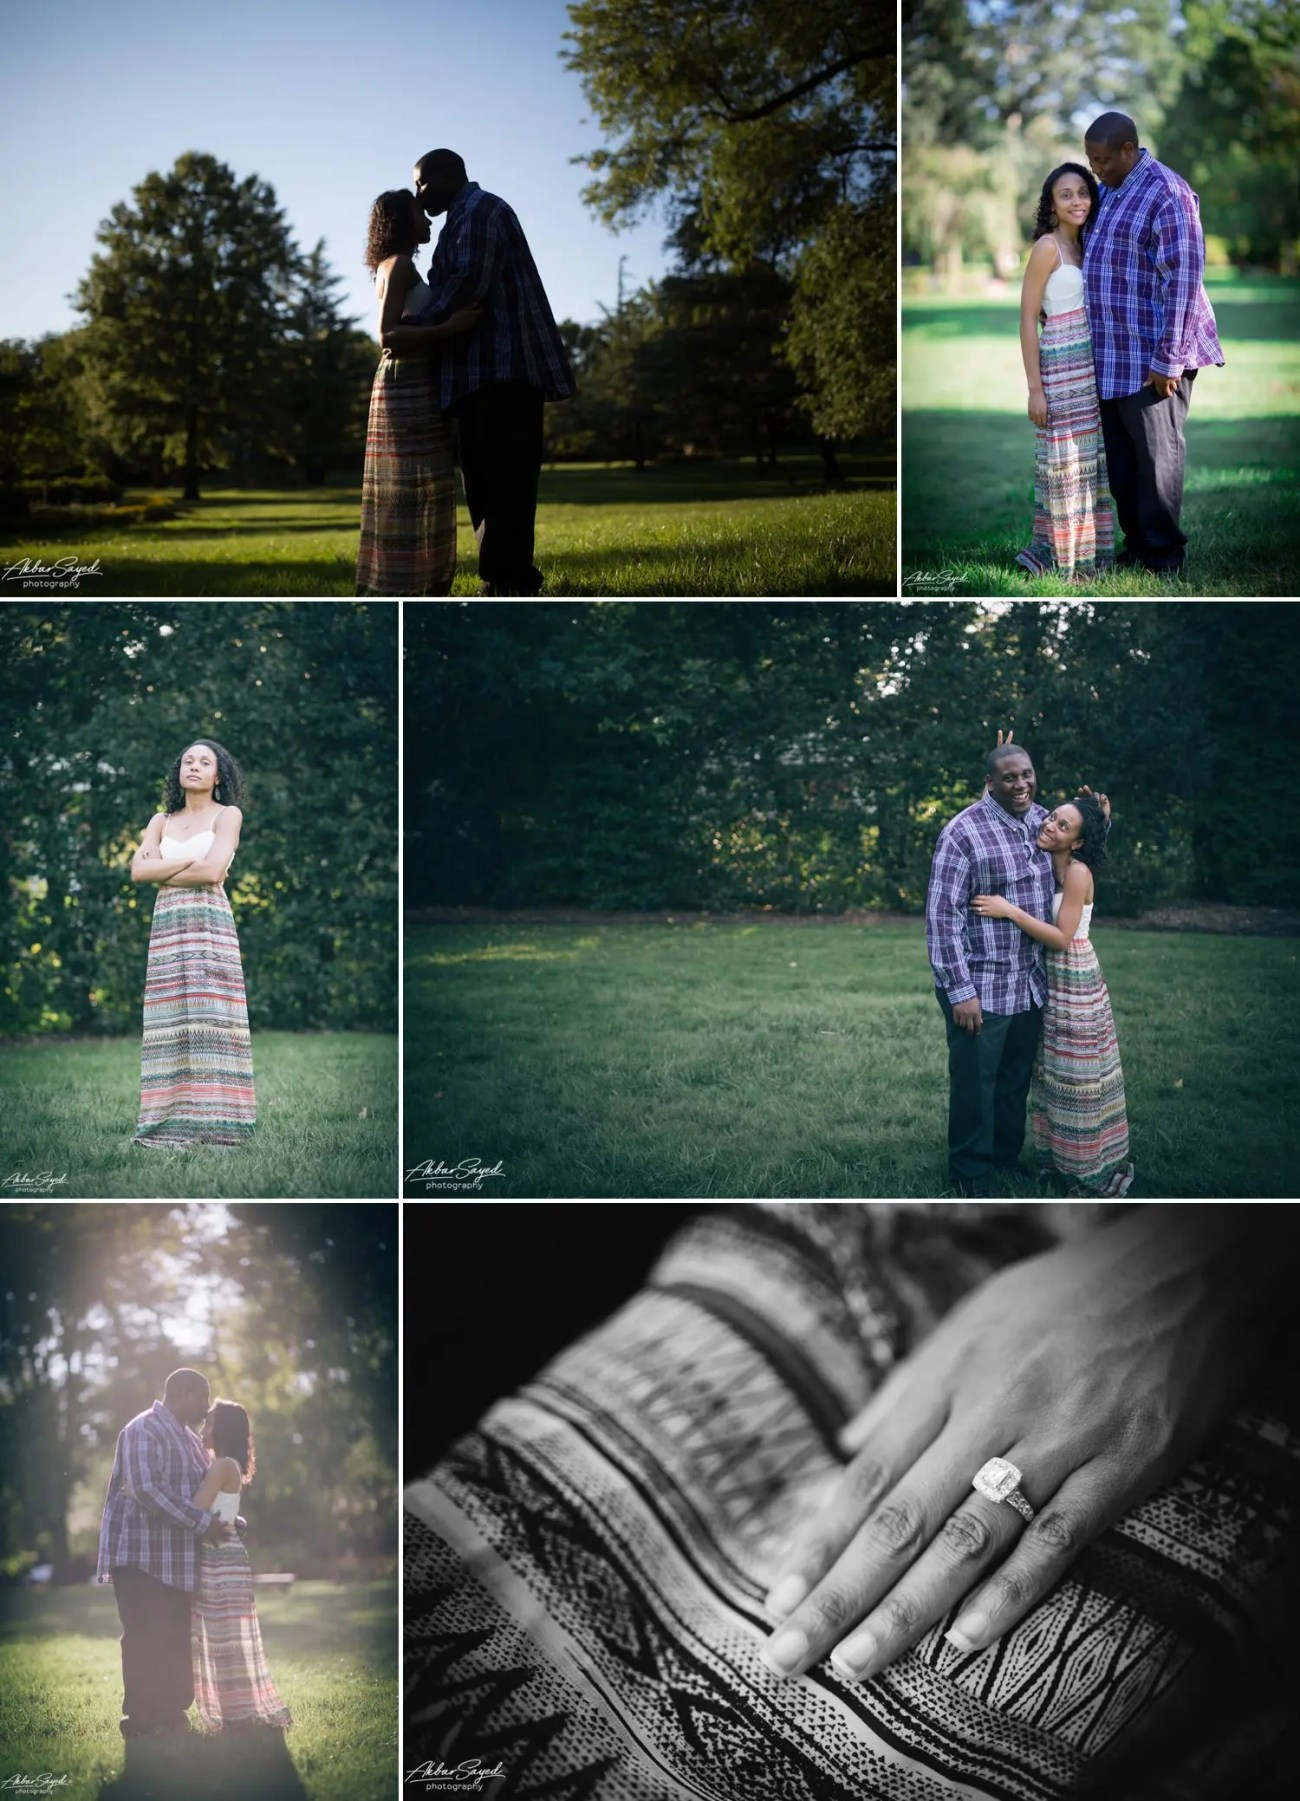 Avon and Tracie - Sherwood Garden Engagement Session 3